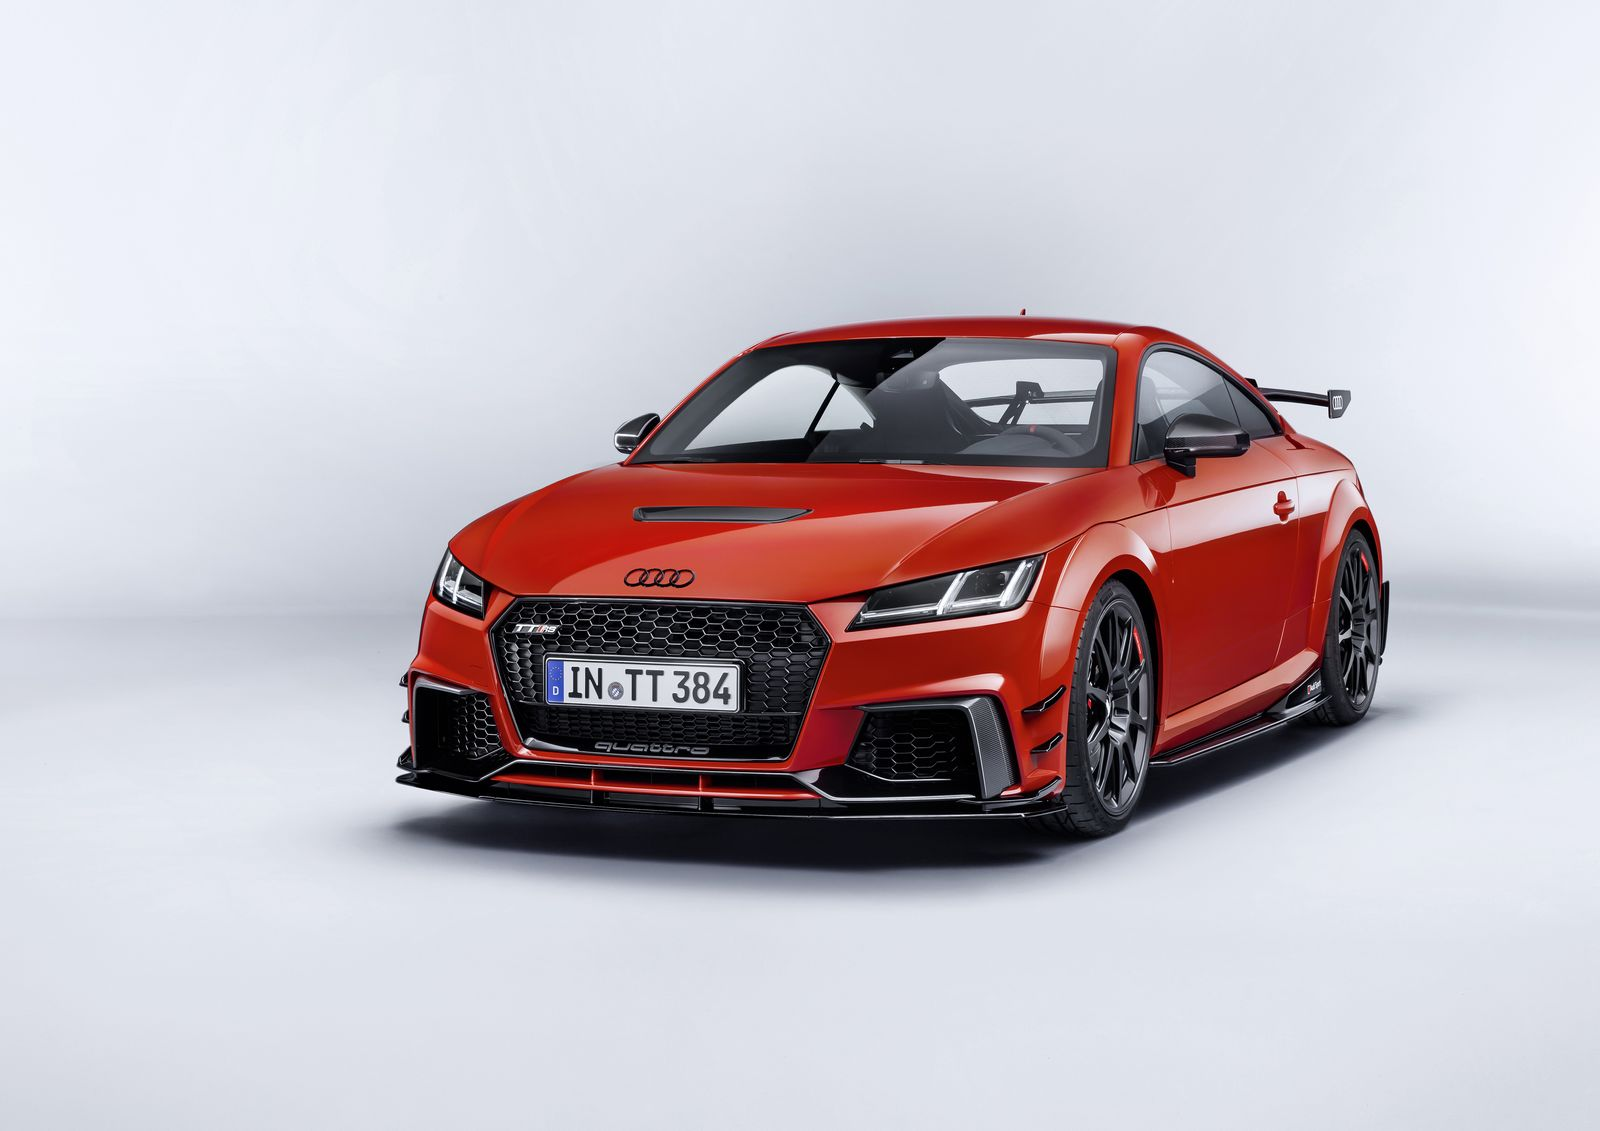 audi performance parts take r8 and tt rs to new heights. Black Bedroom Furniture Sets. Home Design Ideas